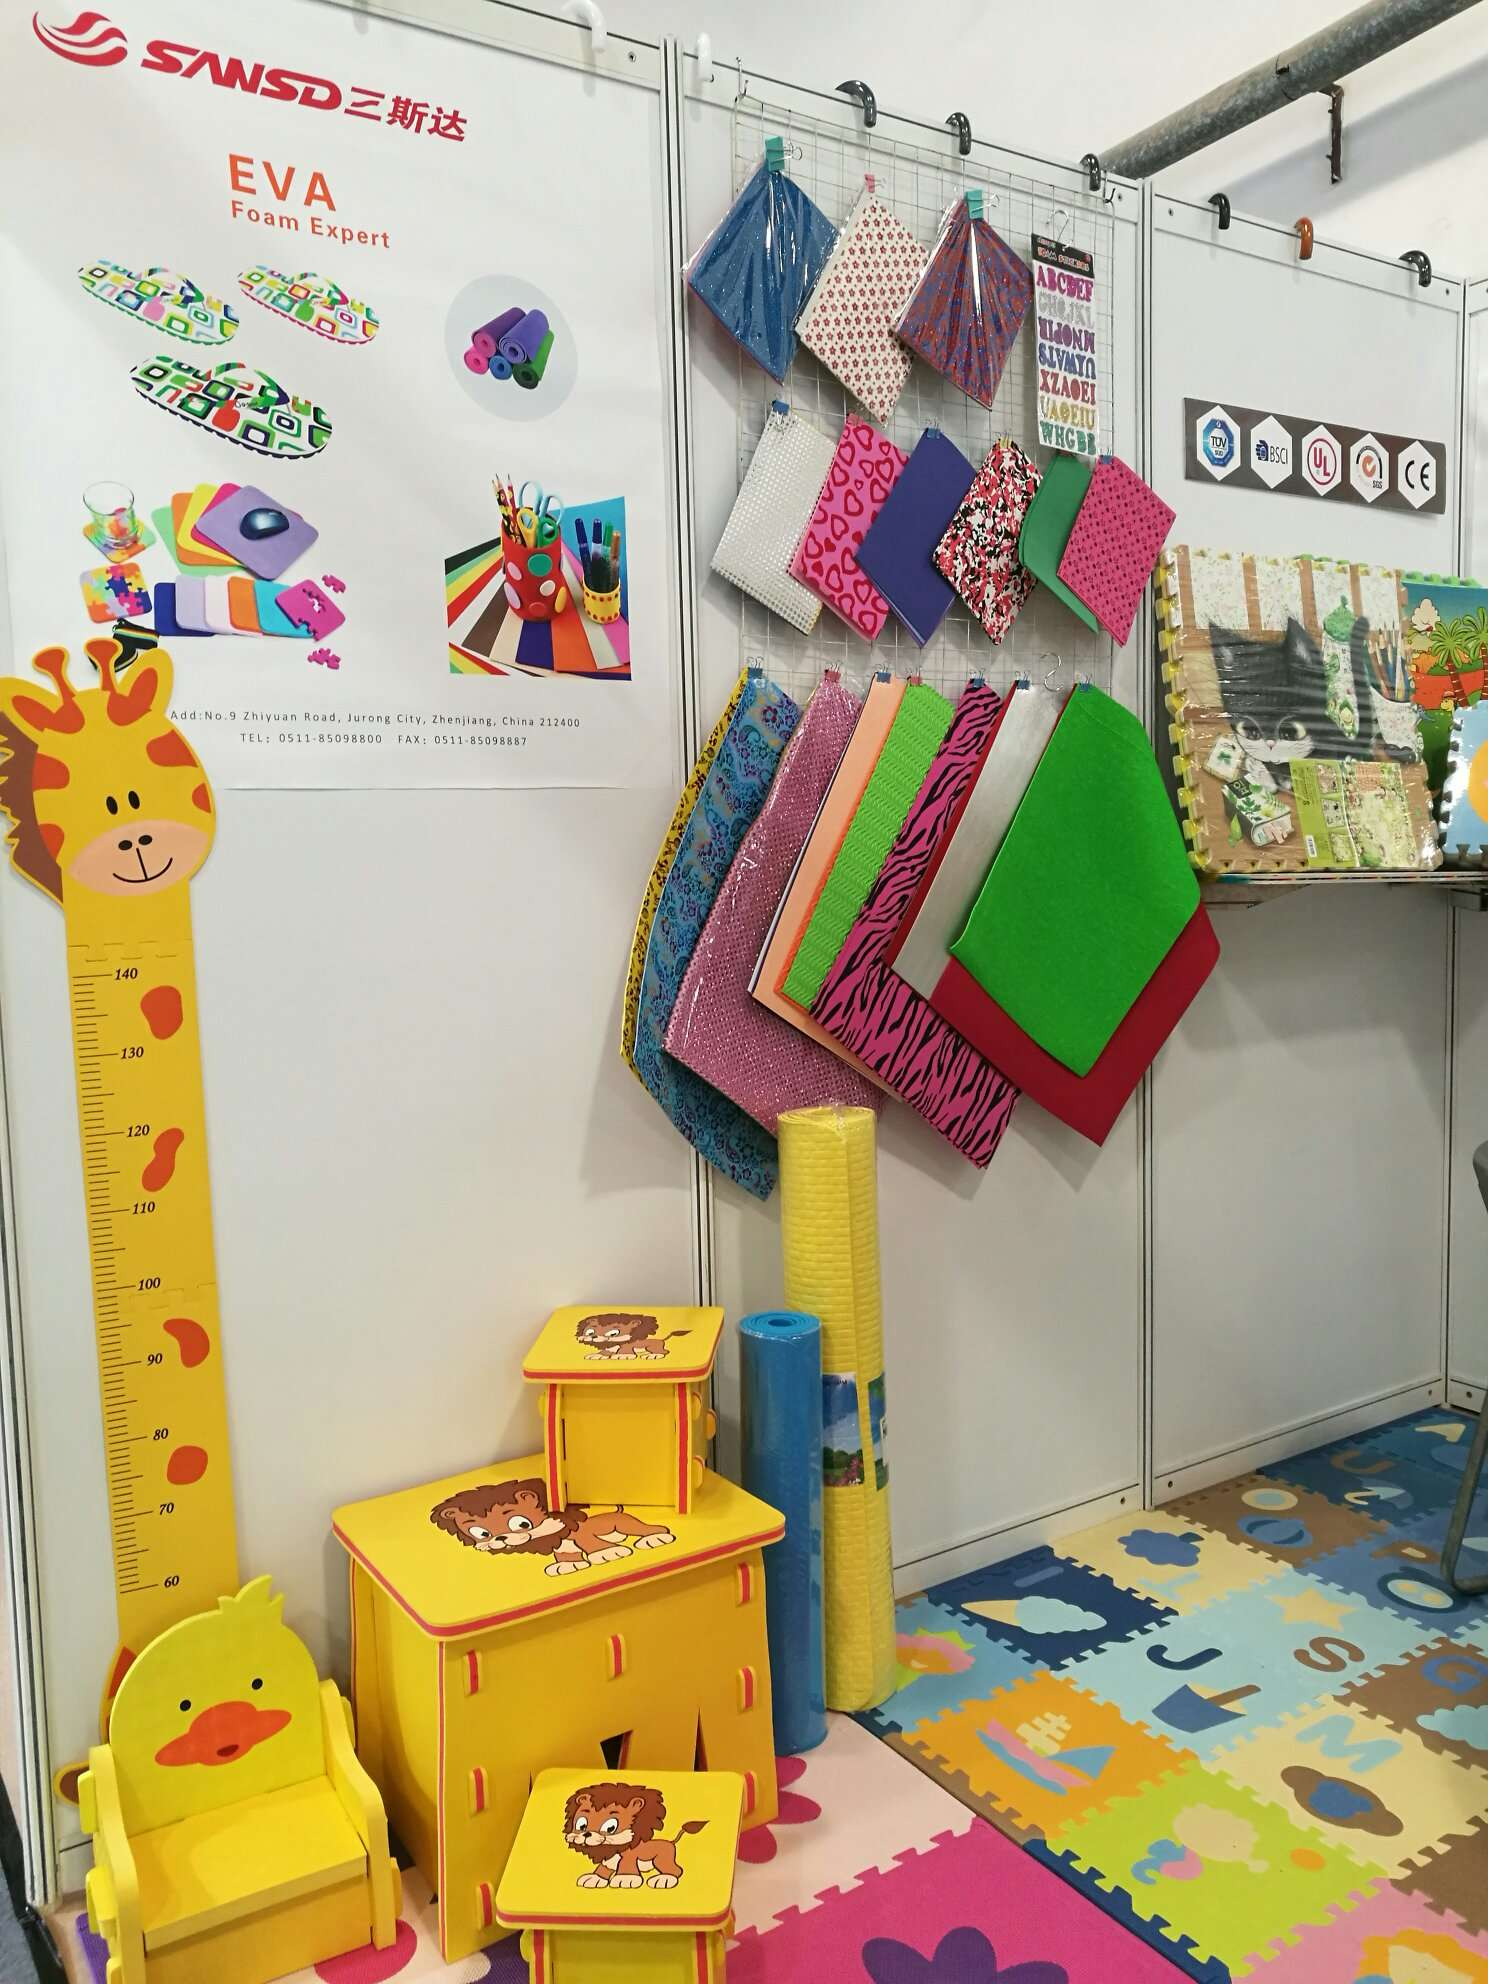 Latest Exhibiton Joing Plan on Shoes Material & Gift Show Domestic & Overseas